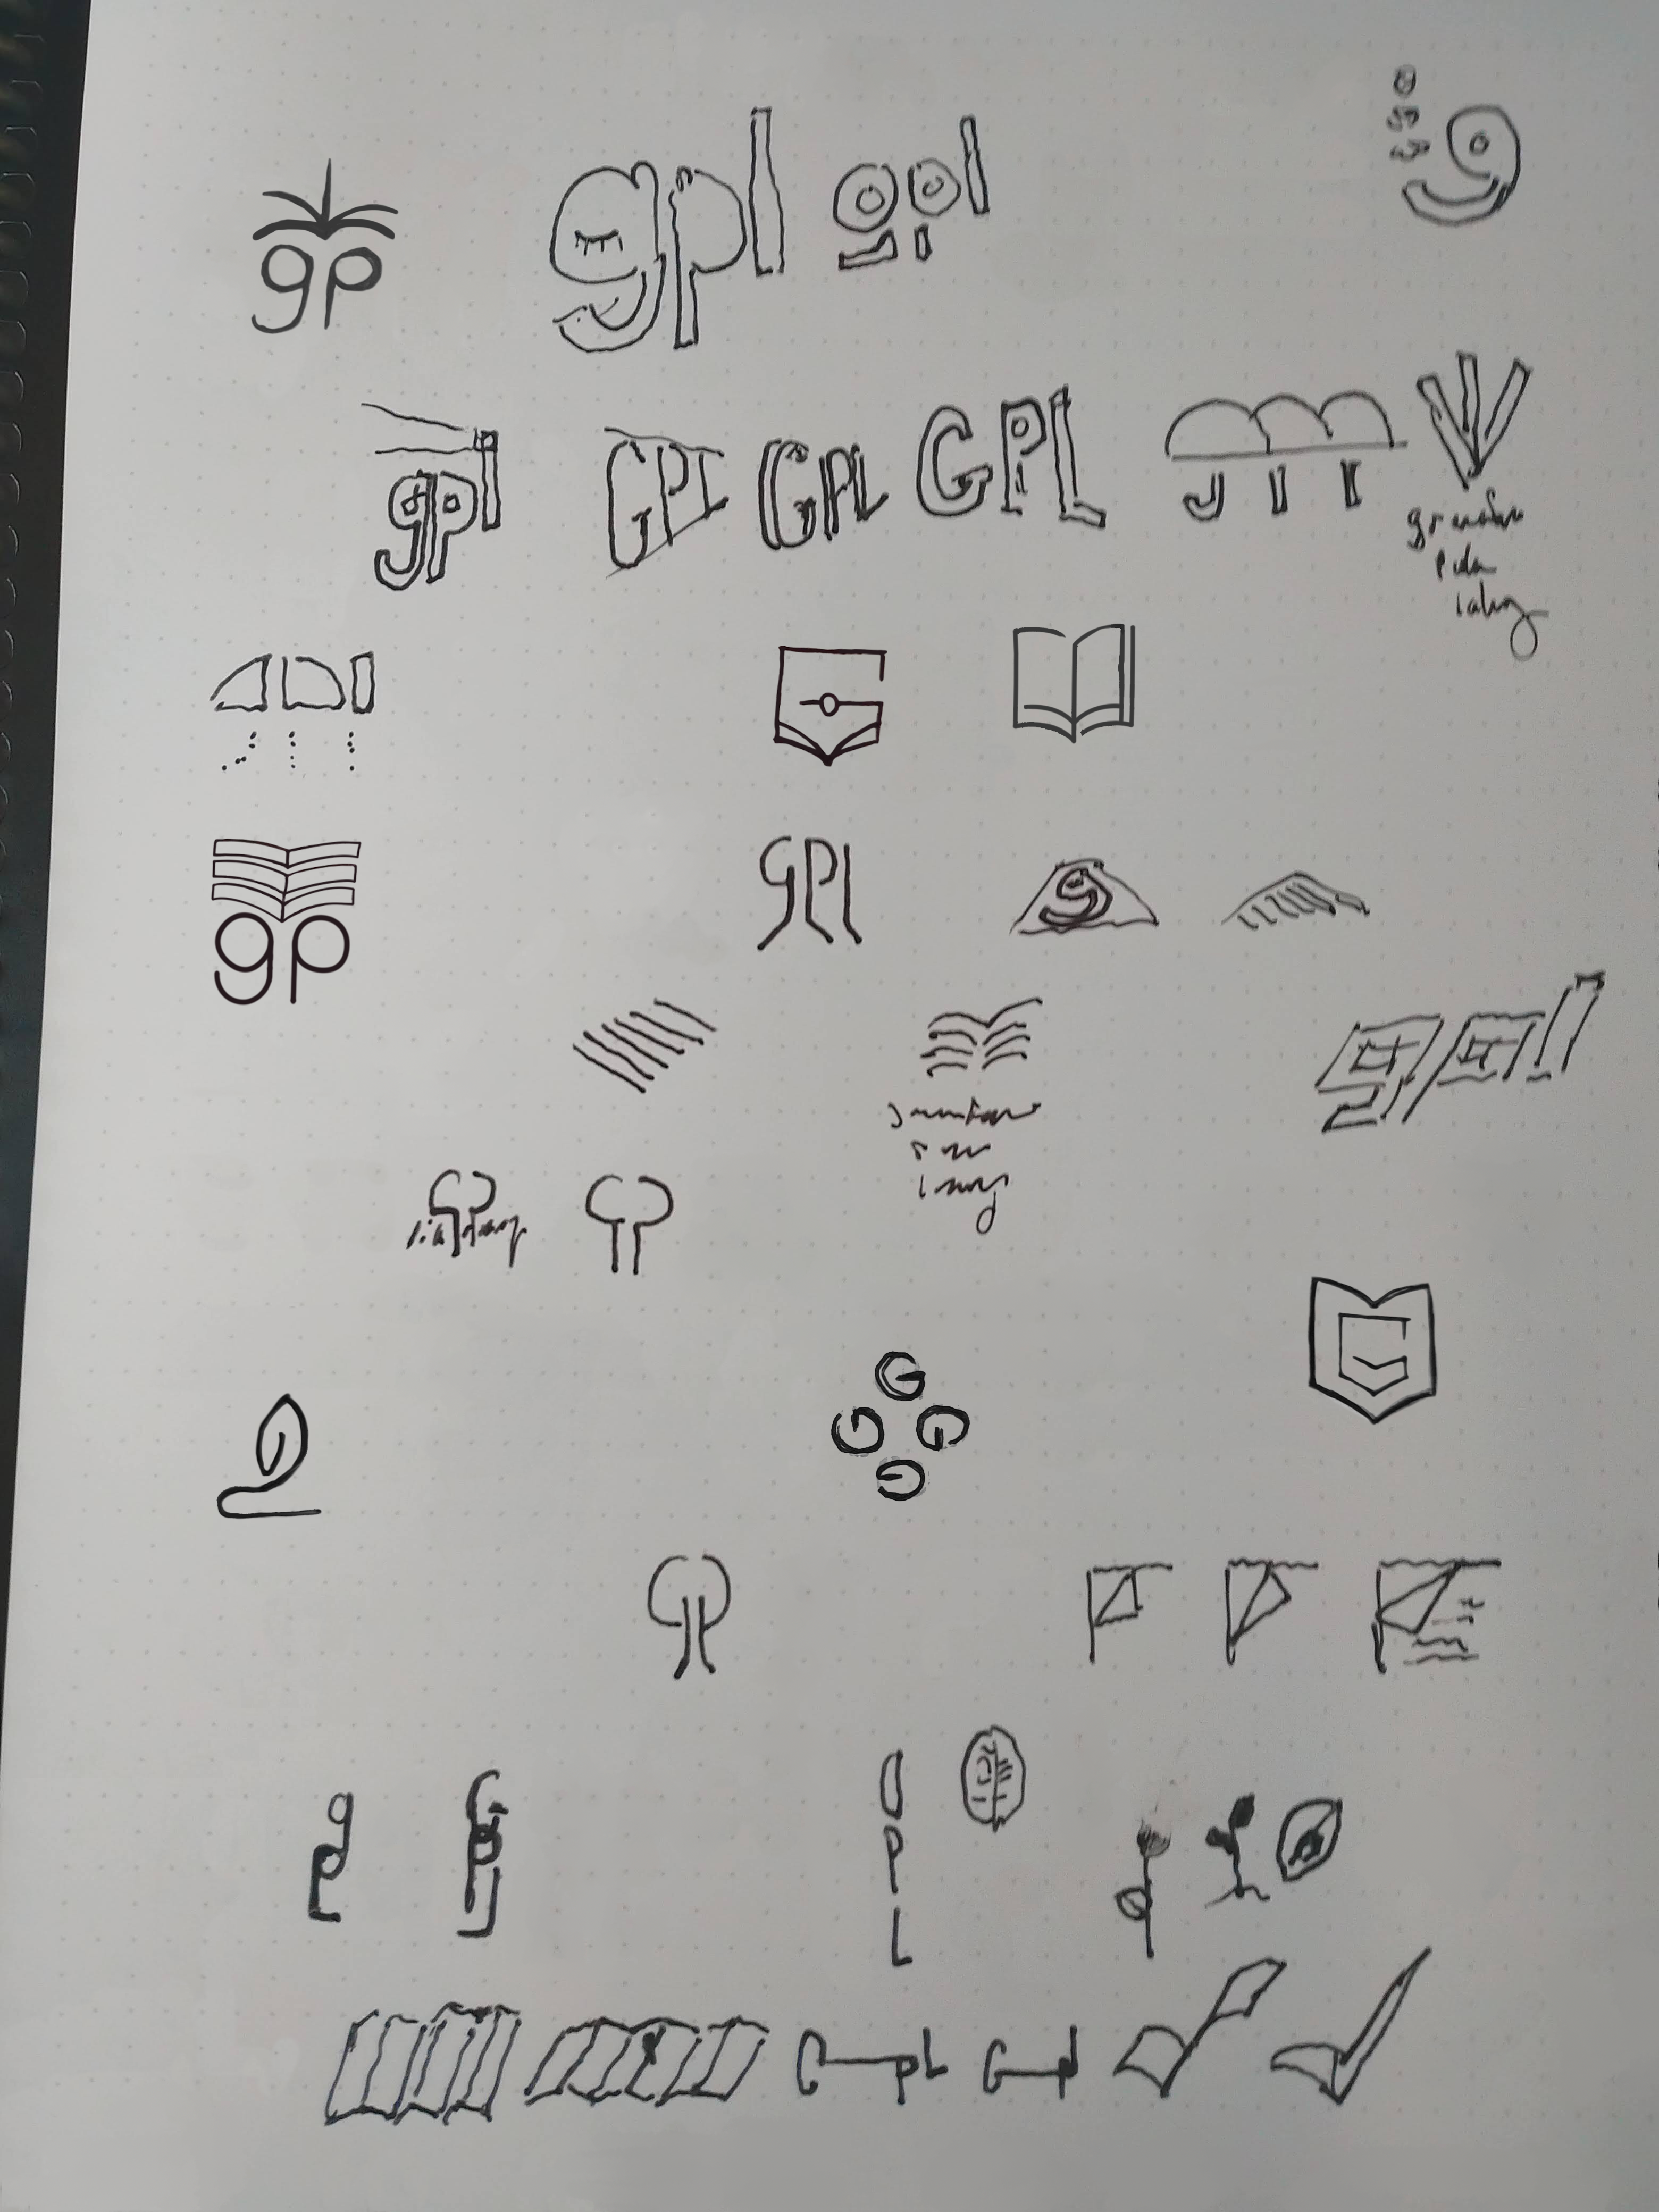 visual of page of illustrated logo early ideas